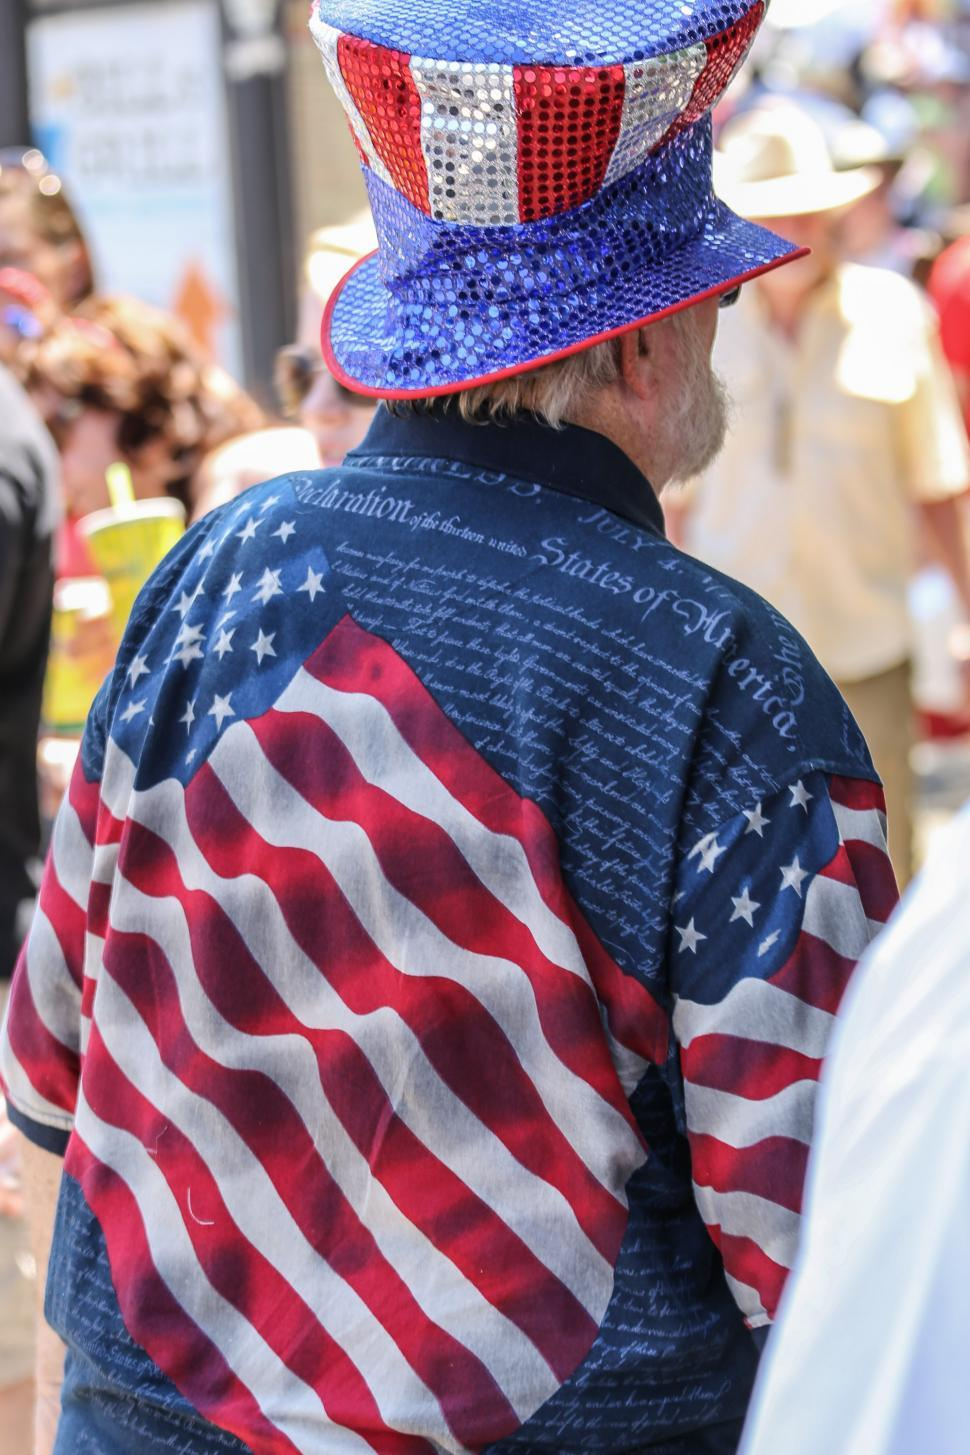 Download Free Stock HD Photo of Flag and constitution design shirt Online